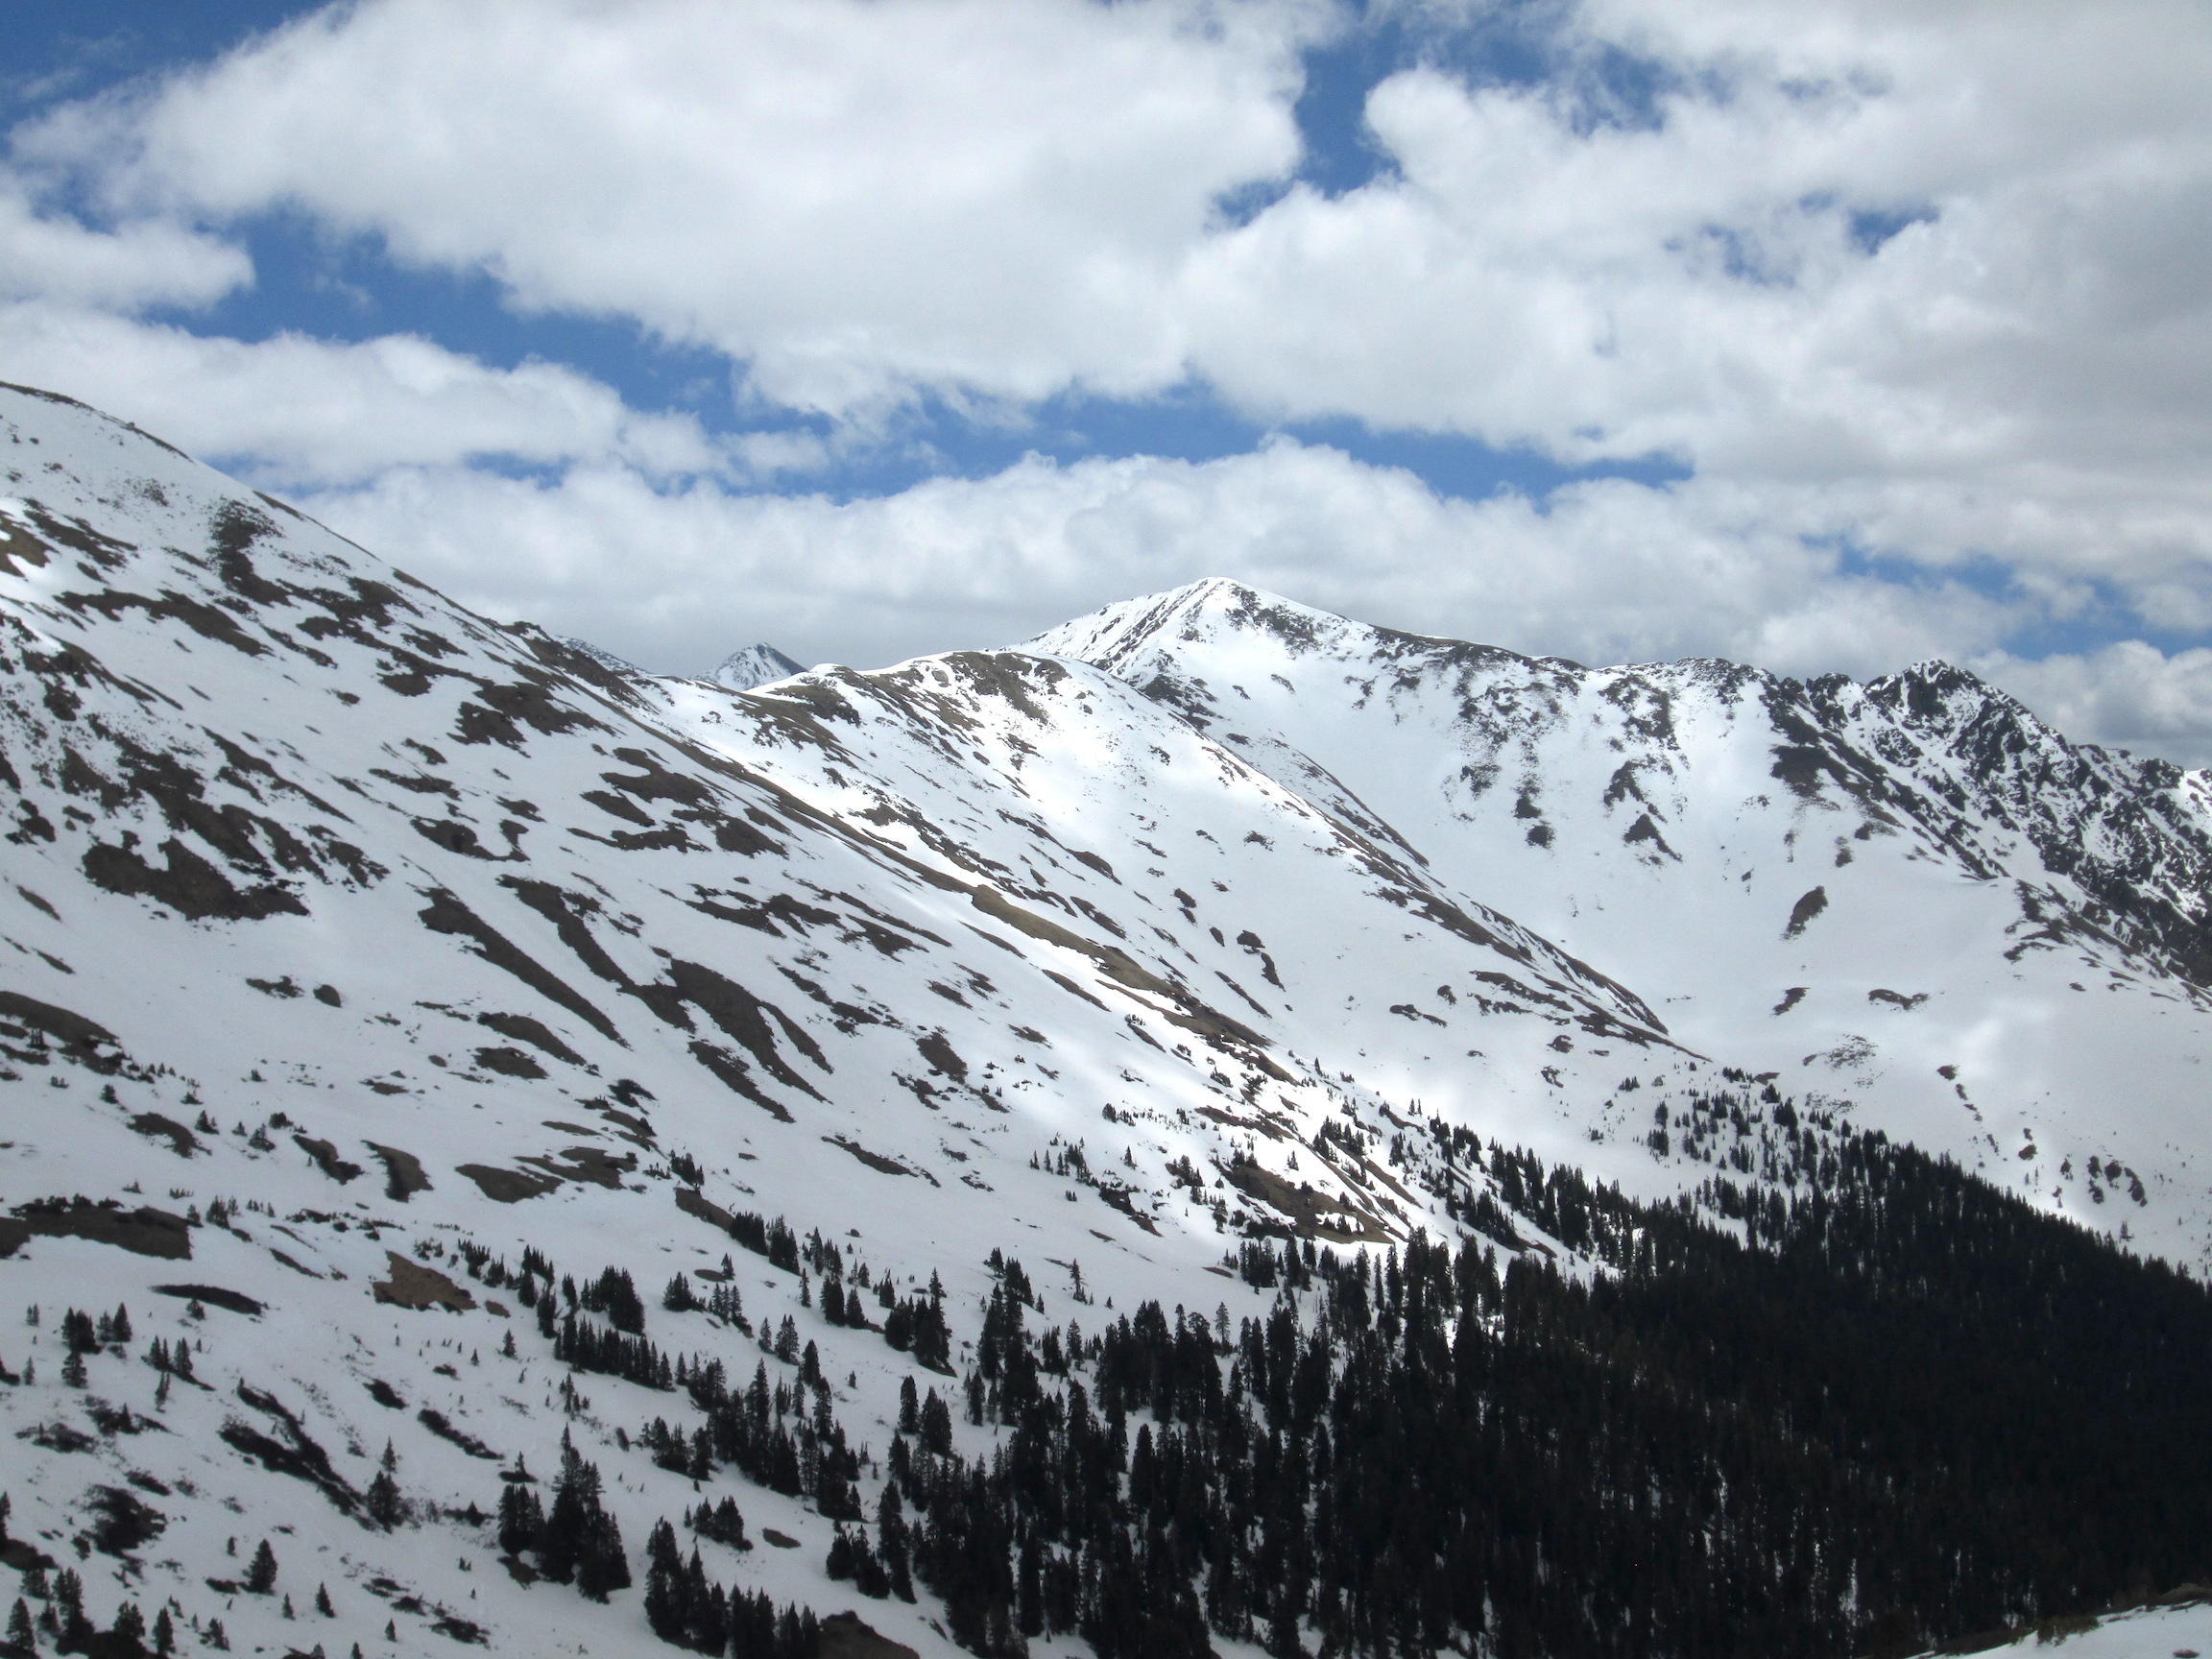 Loveland Pass on June 1. With thinning snowcover, solar radiation absorbed by the ground and vegetation are then re-emitted as thermal (longwave) energy, and rapidly accelerating snowmelt around their perimeter.